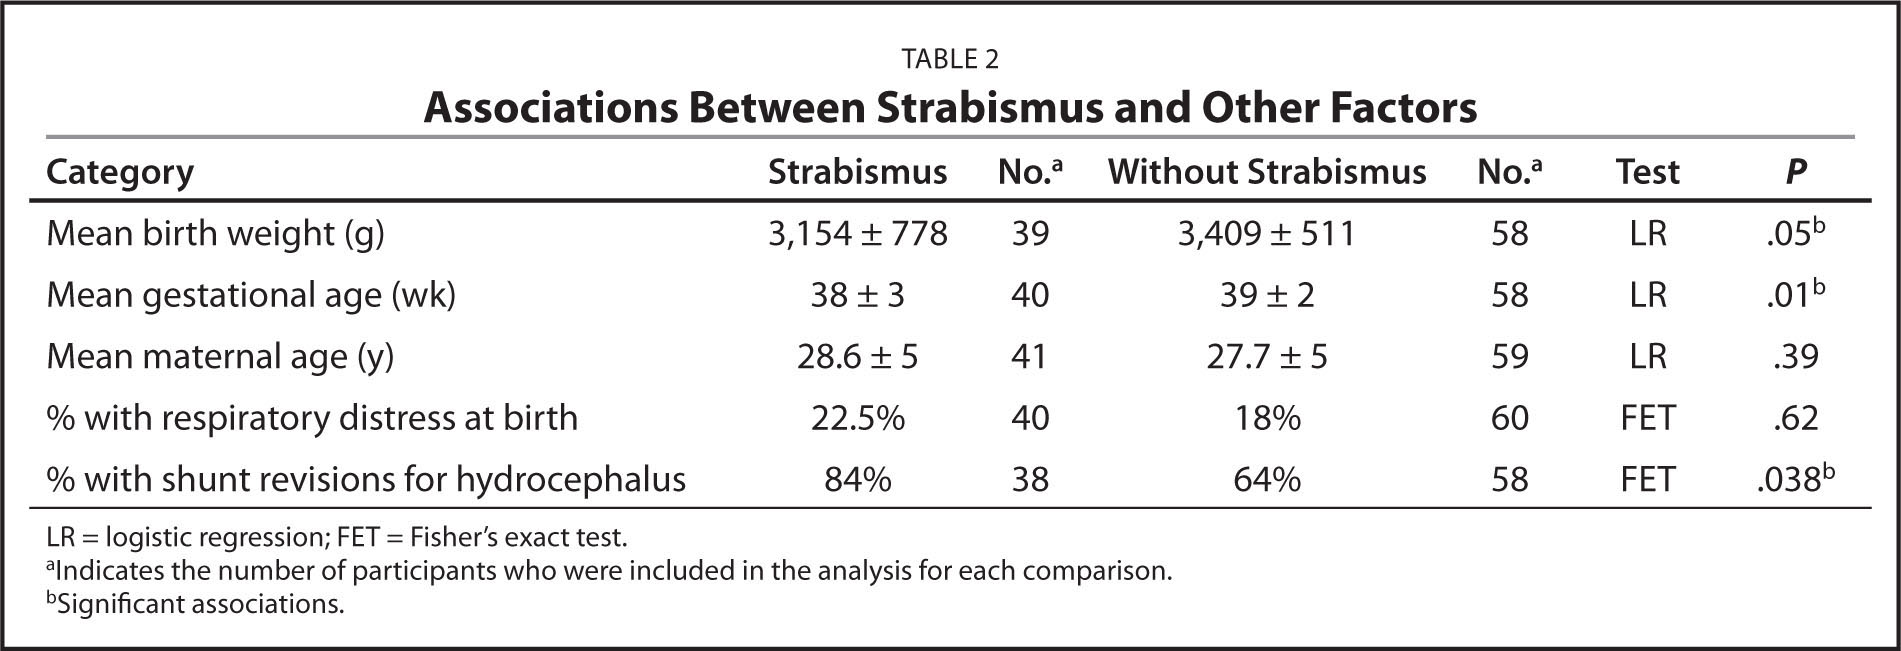 Associations Between Strabismus and Other Factors